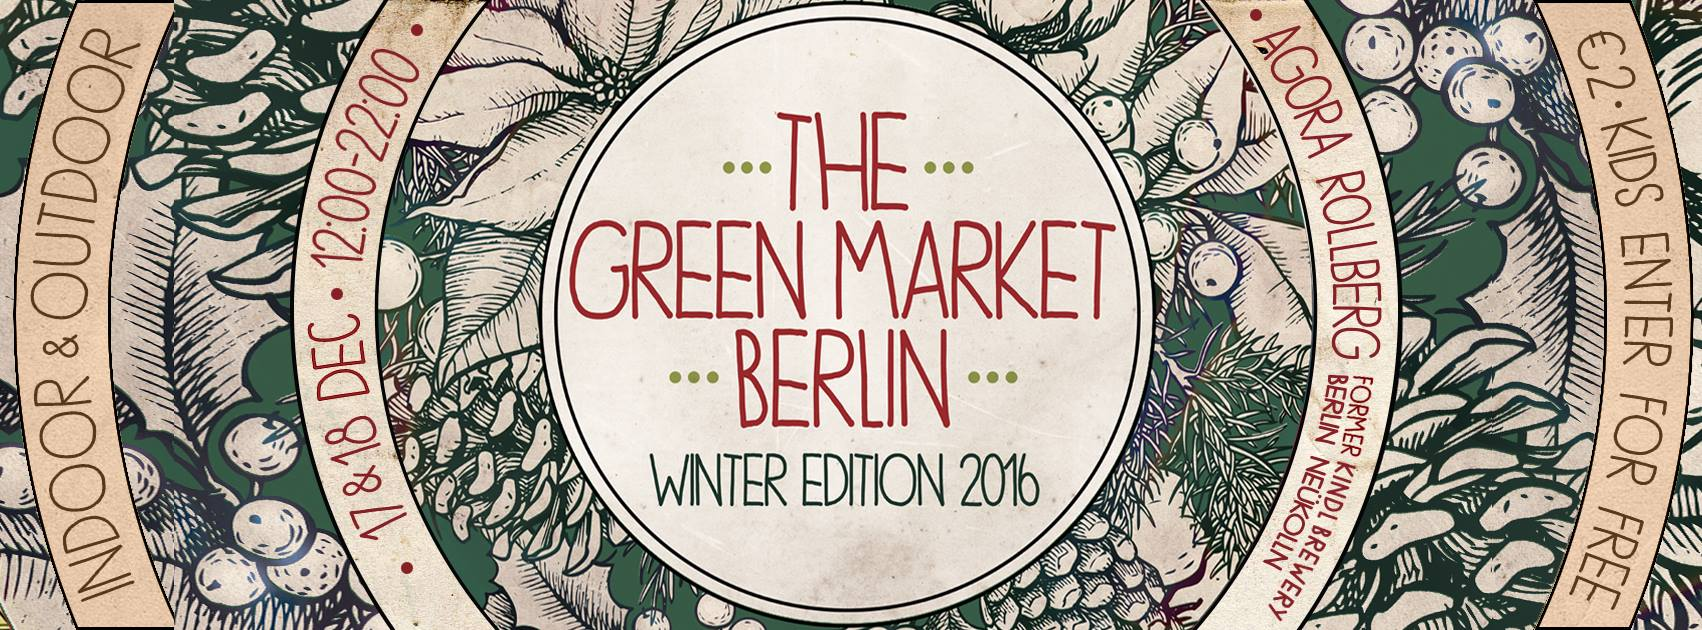 The Green Market Berlin – Winter Edition 2016: Veganer Weihnachtsmarkt, Bild: © The Green Market Berlin